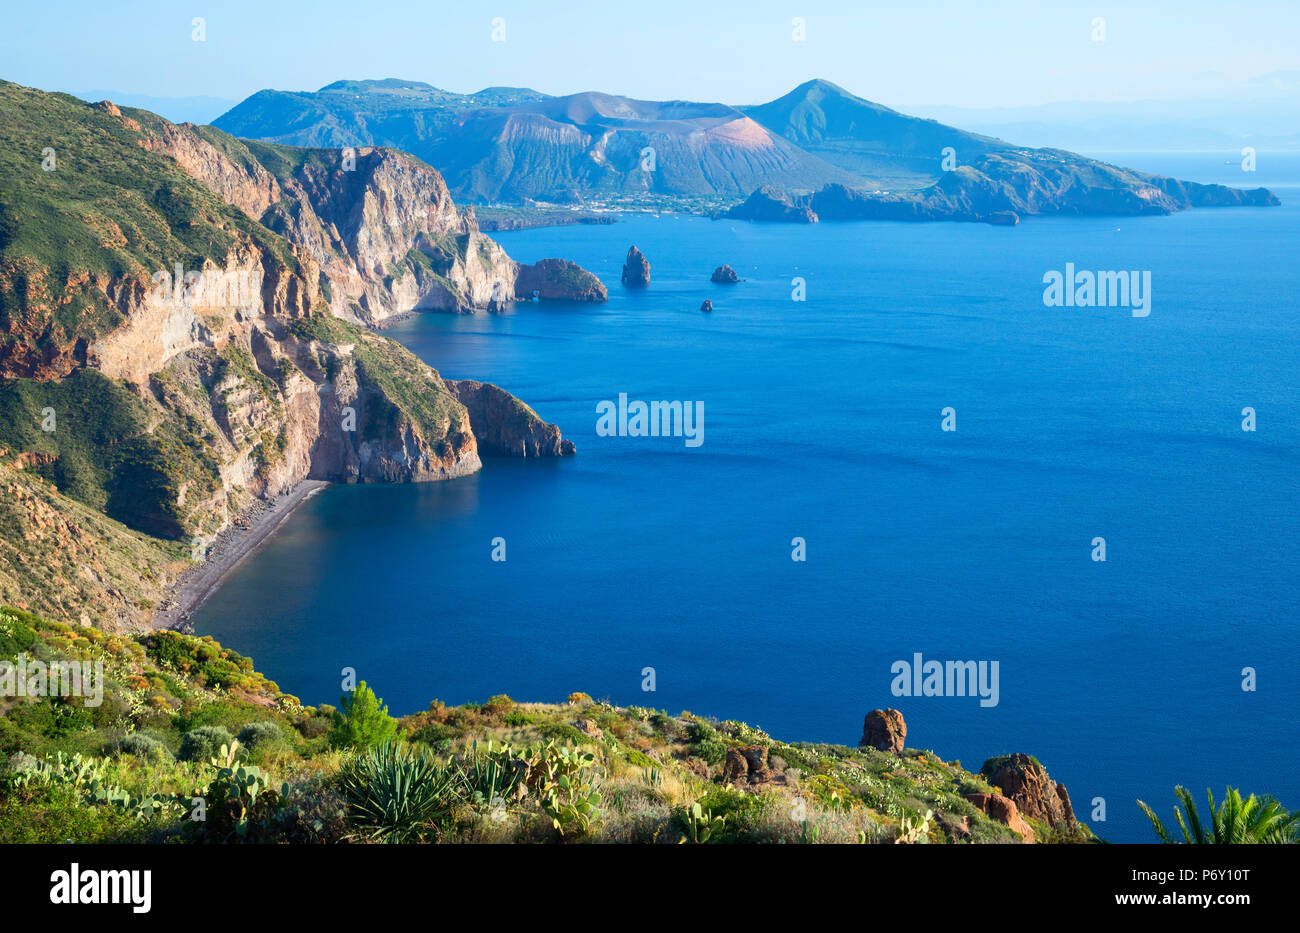 View from Belvedere Quattrocchi, Lipari, Aeolian Islands, UNESCO World Heritage Site, Sicily, Italy, Mediterranean, Europe - Stock Image